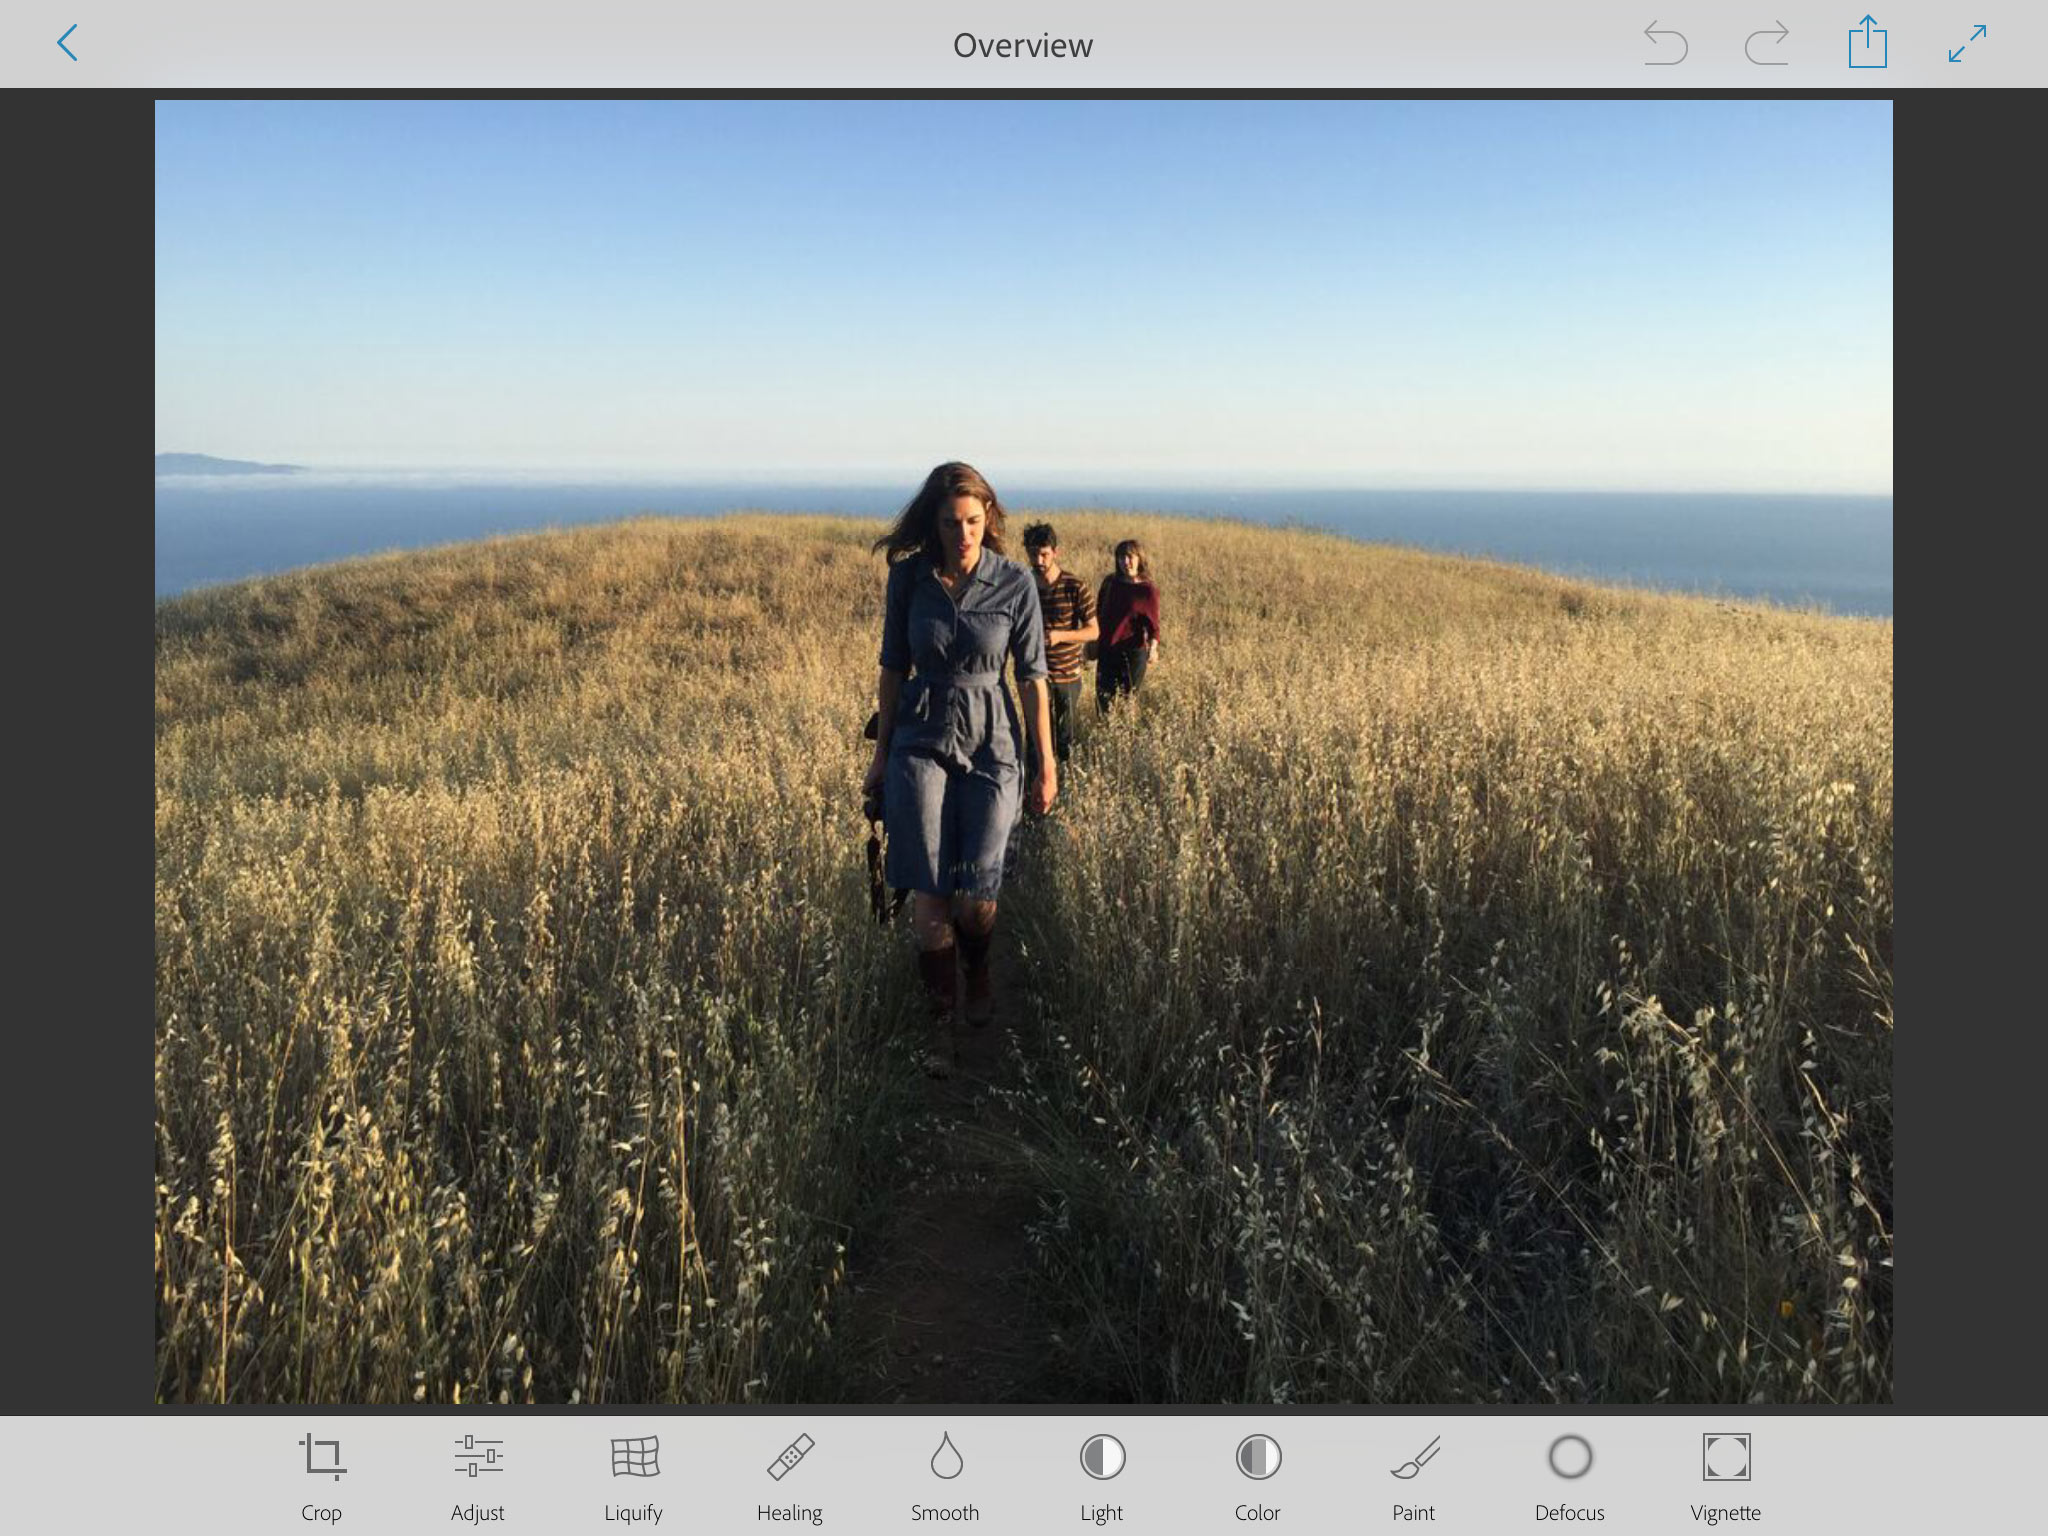 Adobe's Project Rigel reboots Photoshop for mobile devices